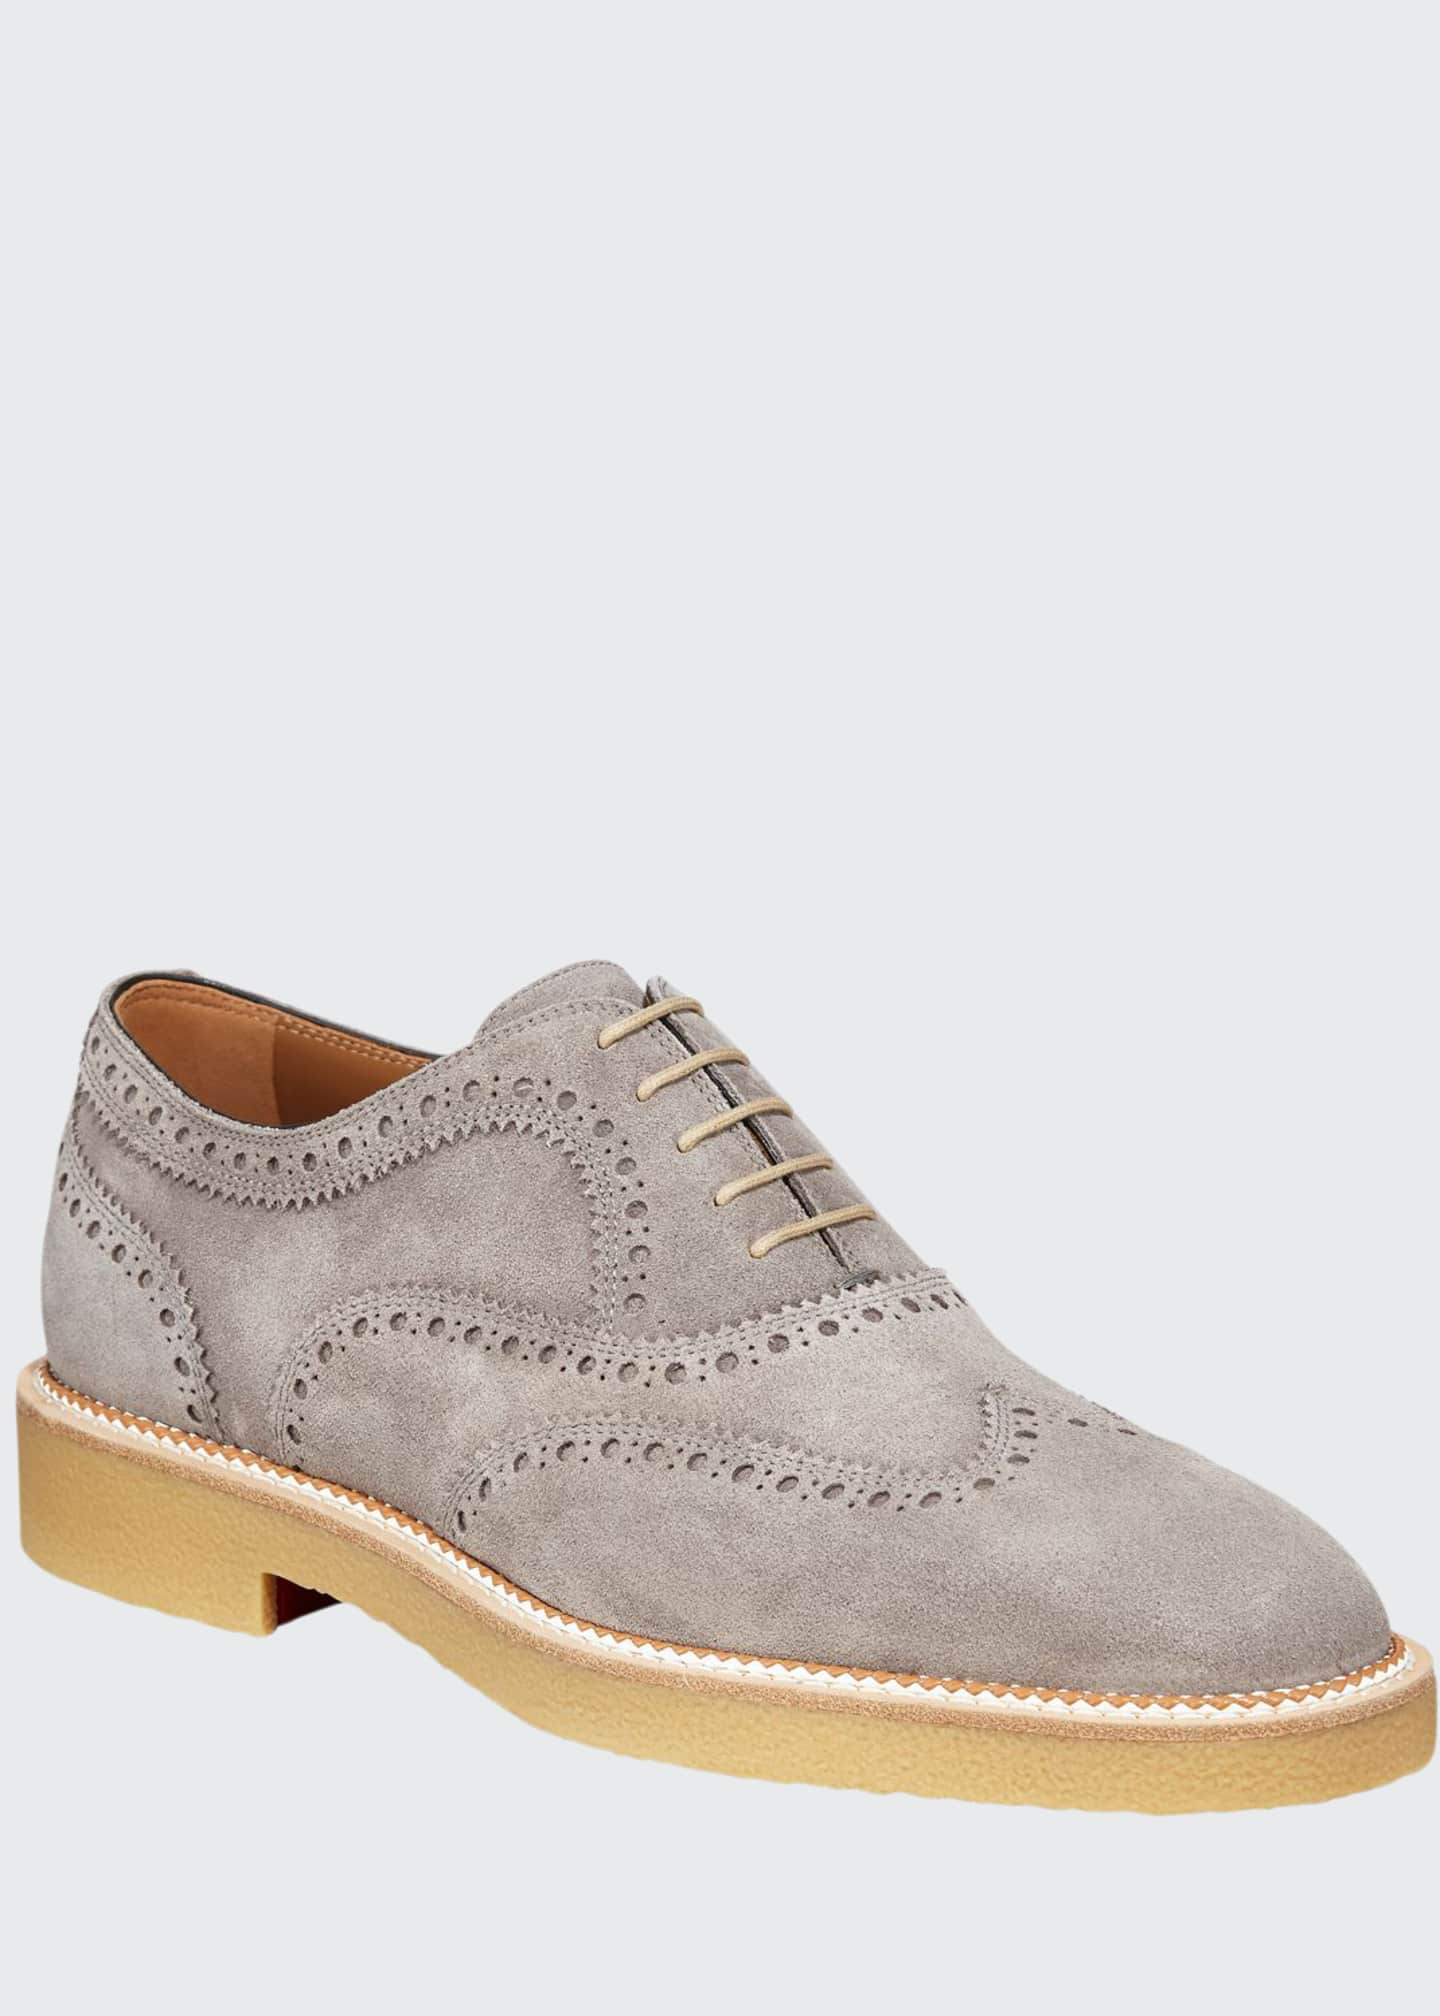 Image 1 of 4: Men's Charlie Crepe-Sole Suede Wing-Tip Oxford Shoes